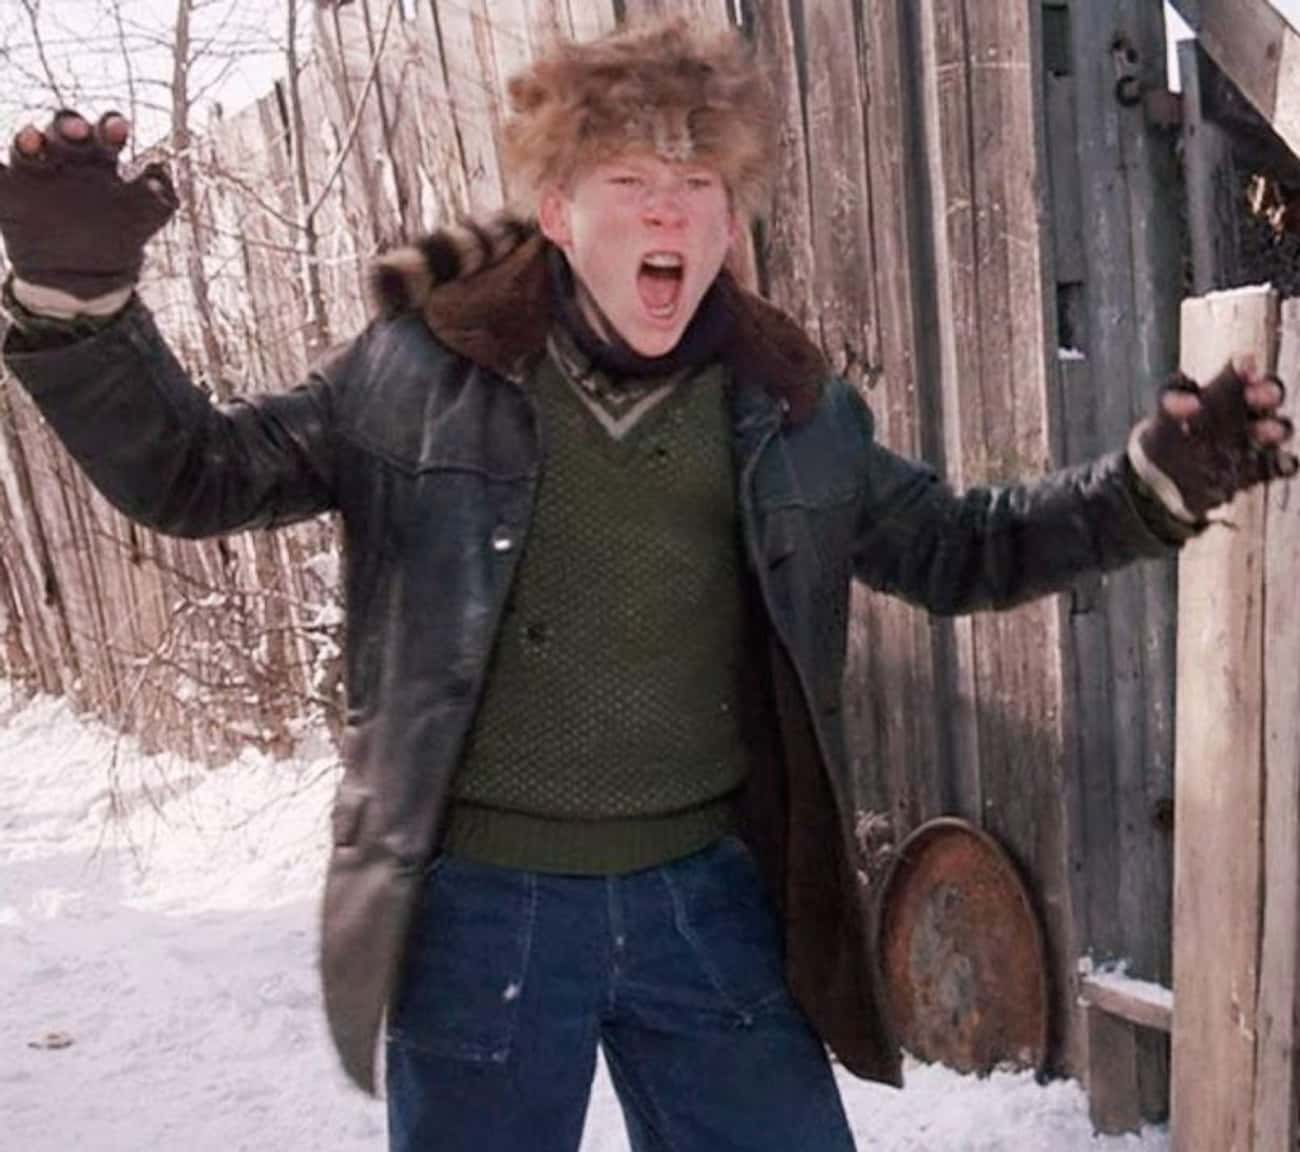 Scut Farkus's Davy Crockett Ha is listed (or ranked) 1 on the list Every Inaccuracy In 'A Christmas Story's Version Of The '40s